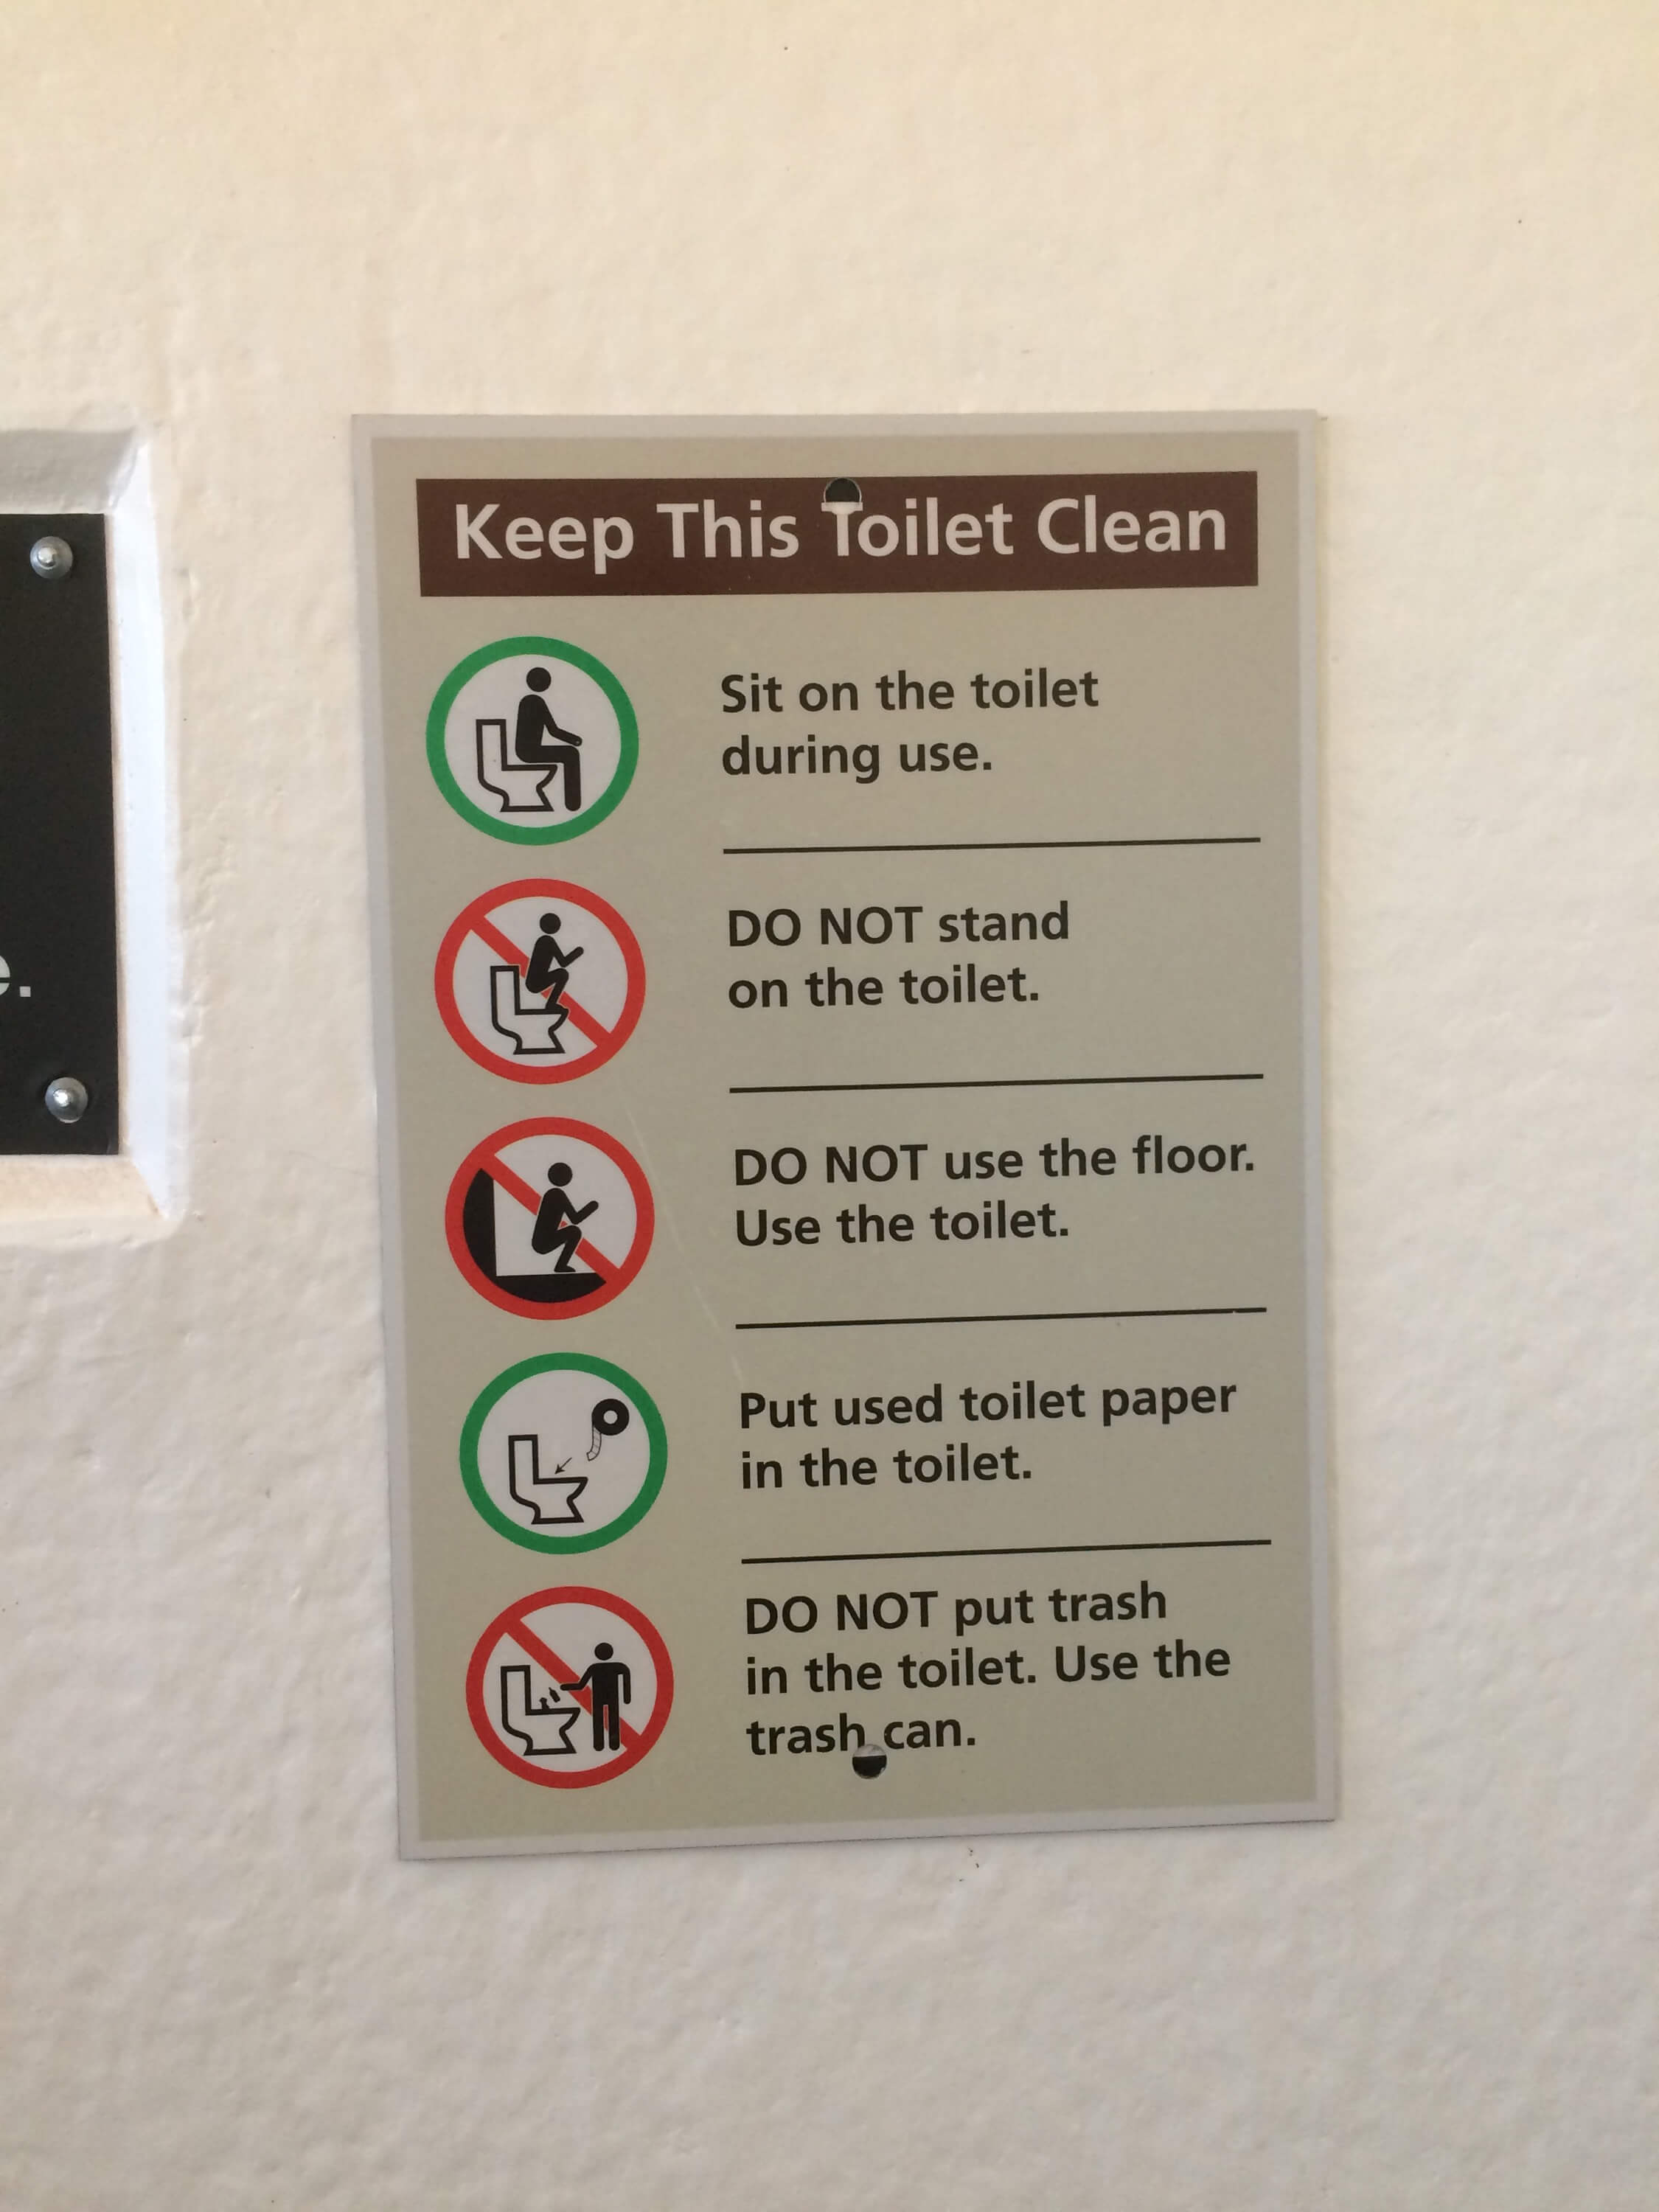 How Three Tourist Destinations Are Handling The Toilet